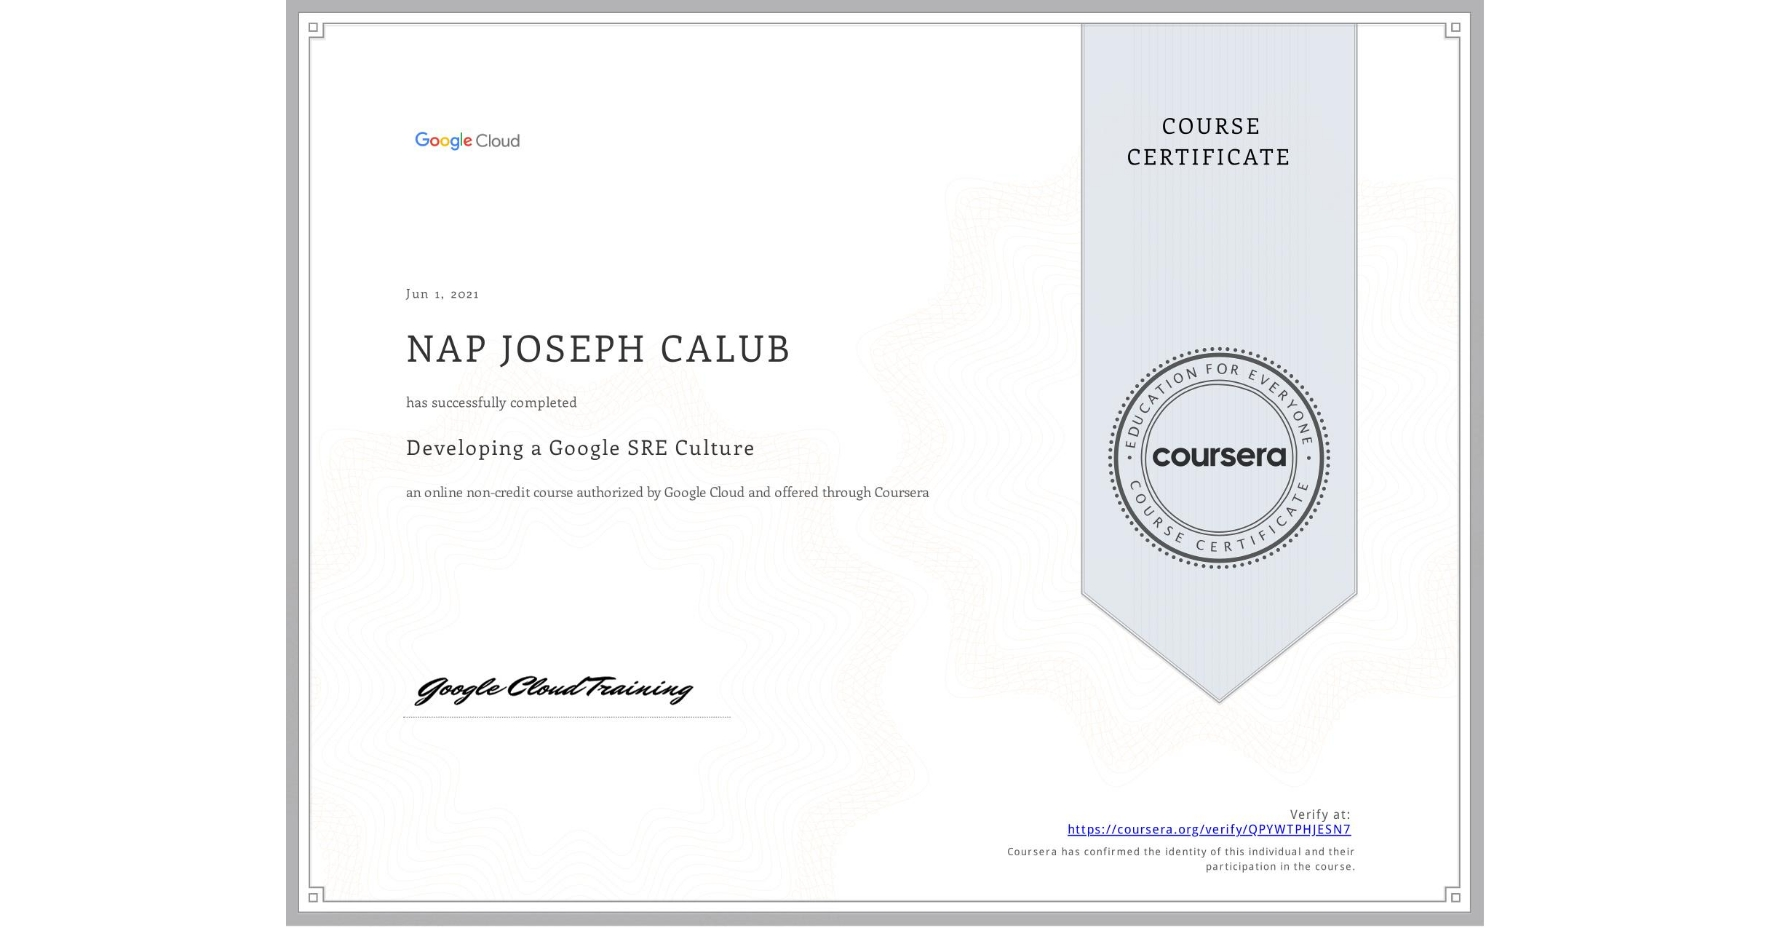 View certificate for NAP JOSEPH  CALUB, Developing a Google SRE Culture, an online non-credit course authorized by Google Cloud and offered through Coursera